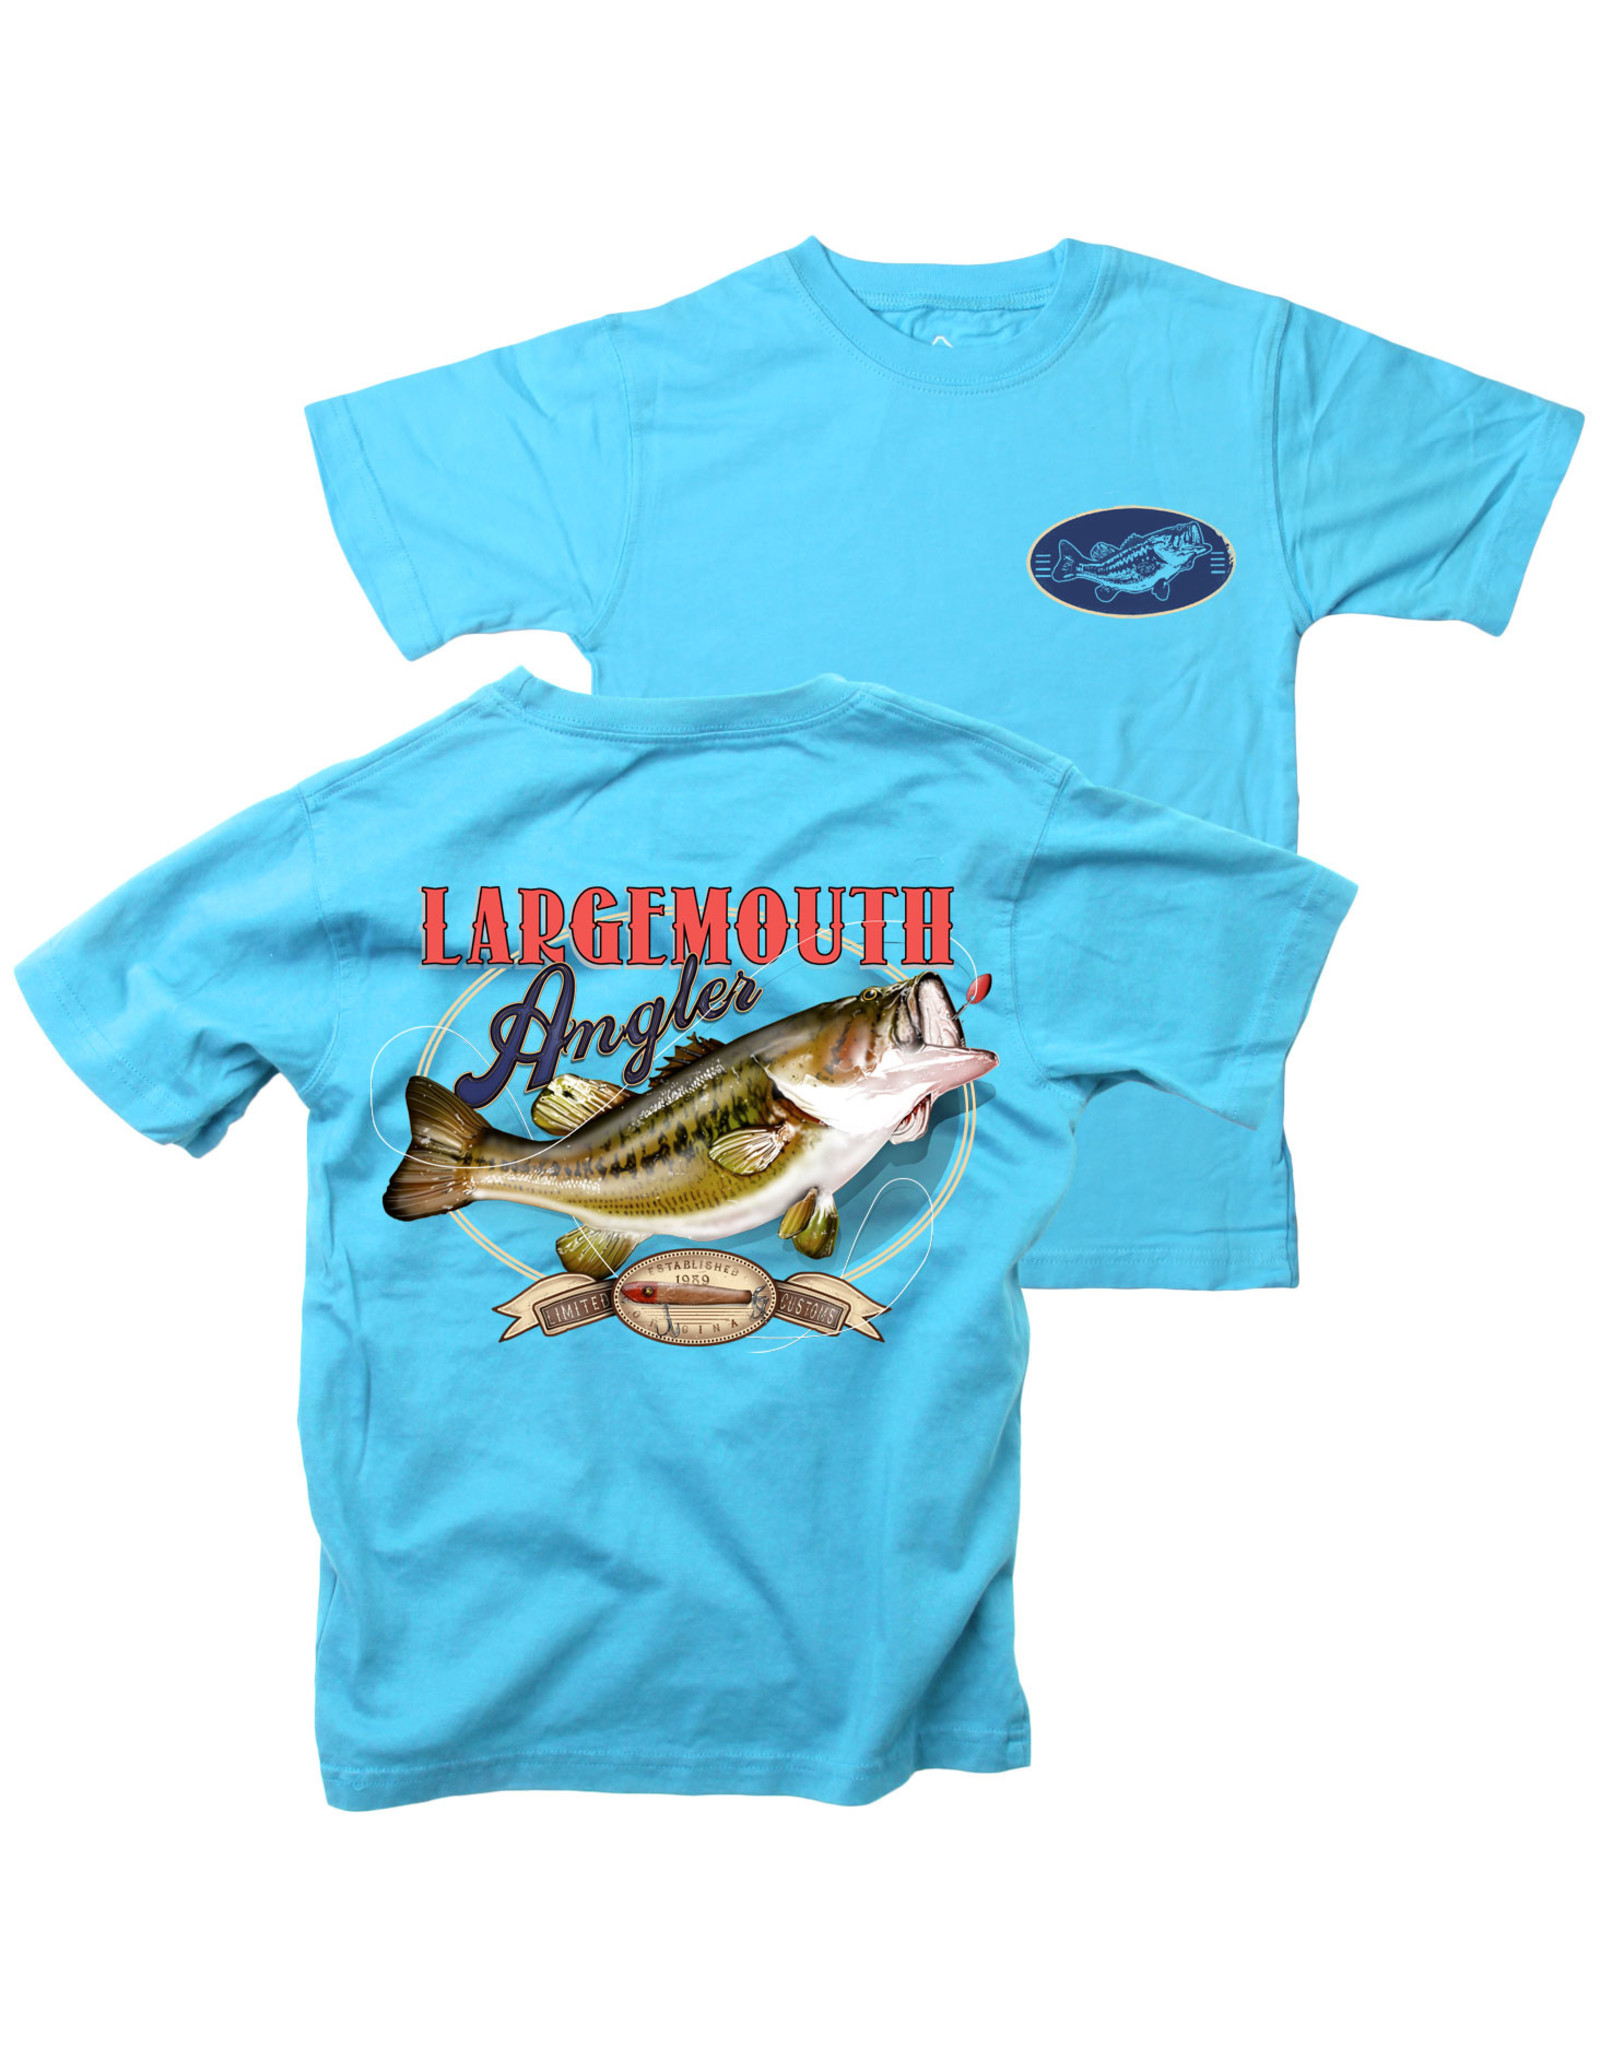 Wes & Willy Short Sleeve Largemouth Angler Tee